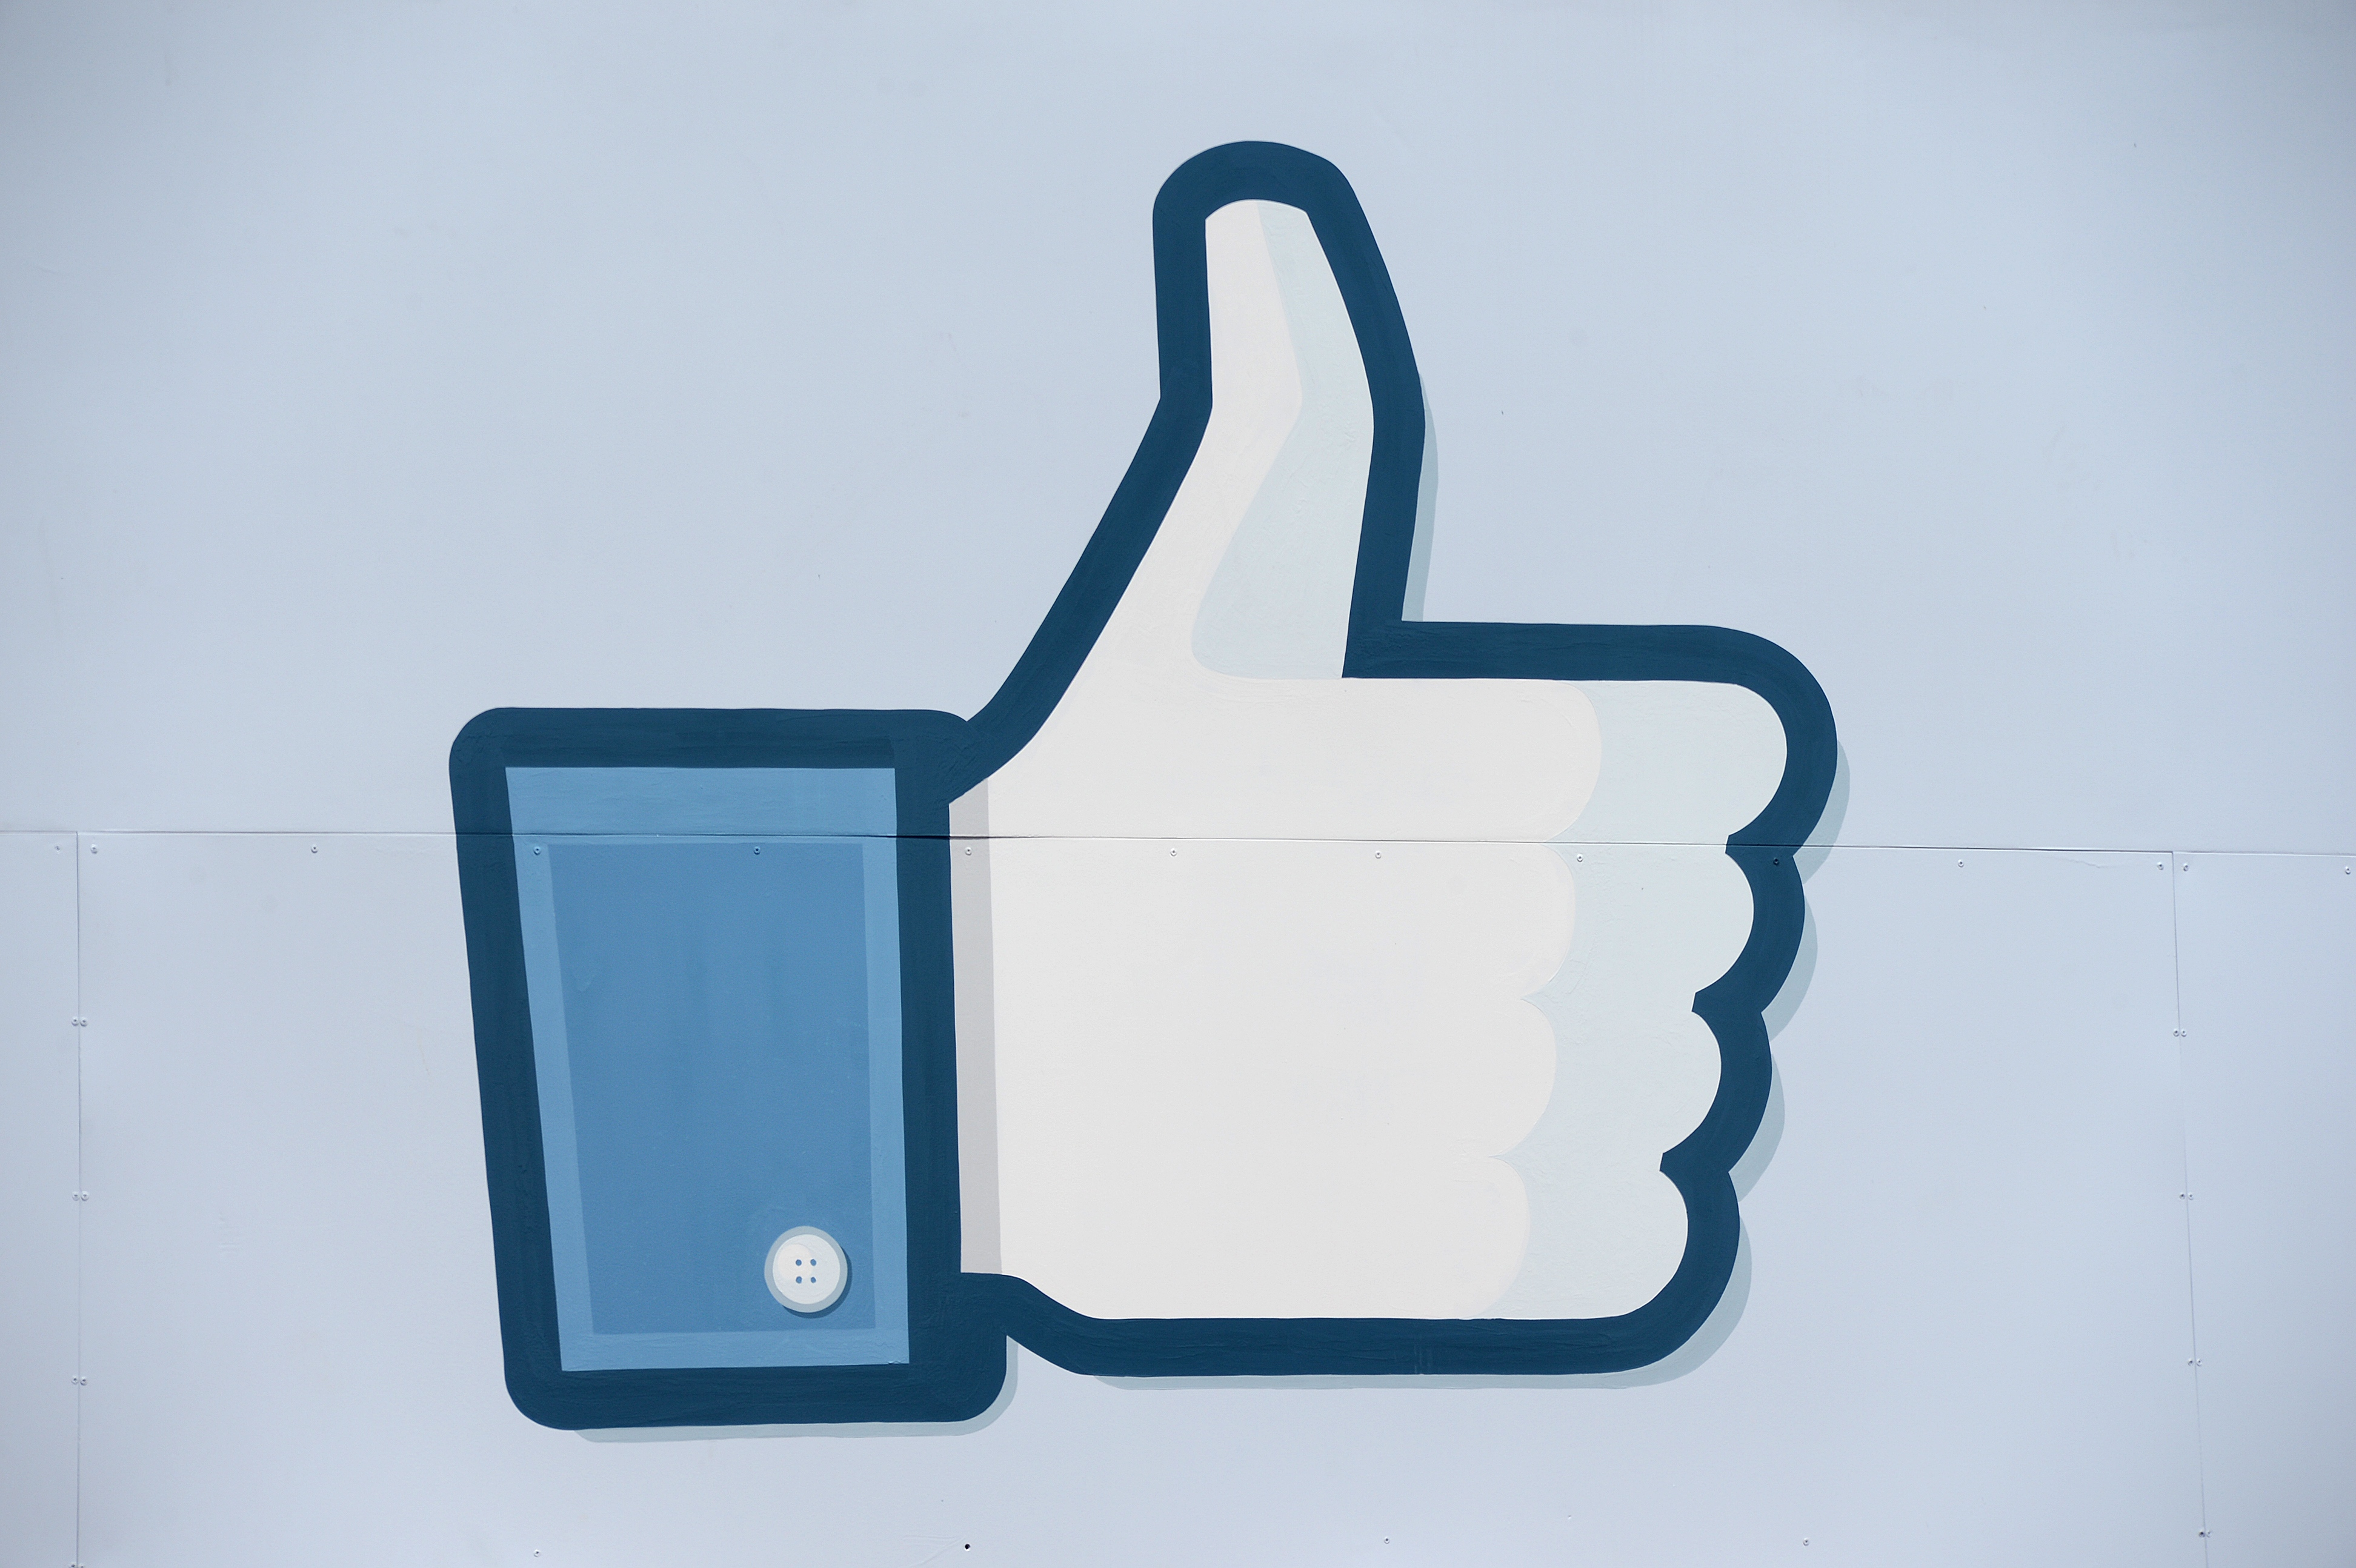 A thumbs up or  Like  icon at the Facebook main campus in Menlo Park, California, May 15, 2012.